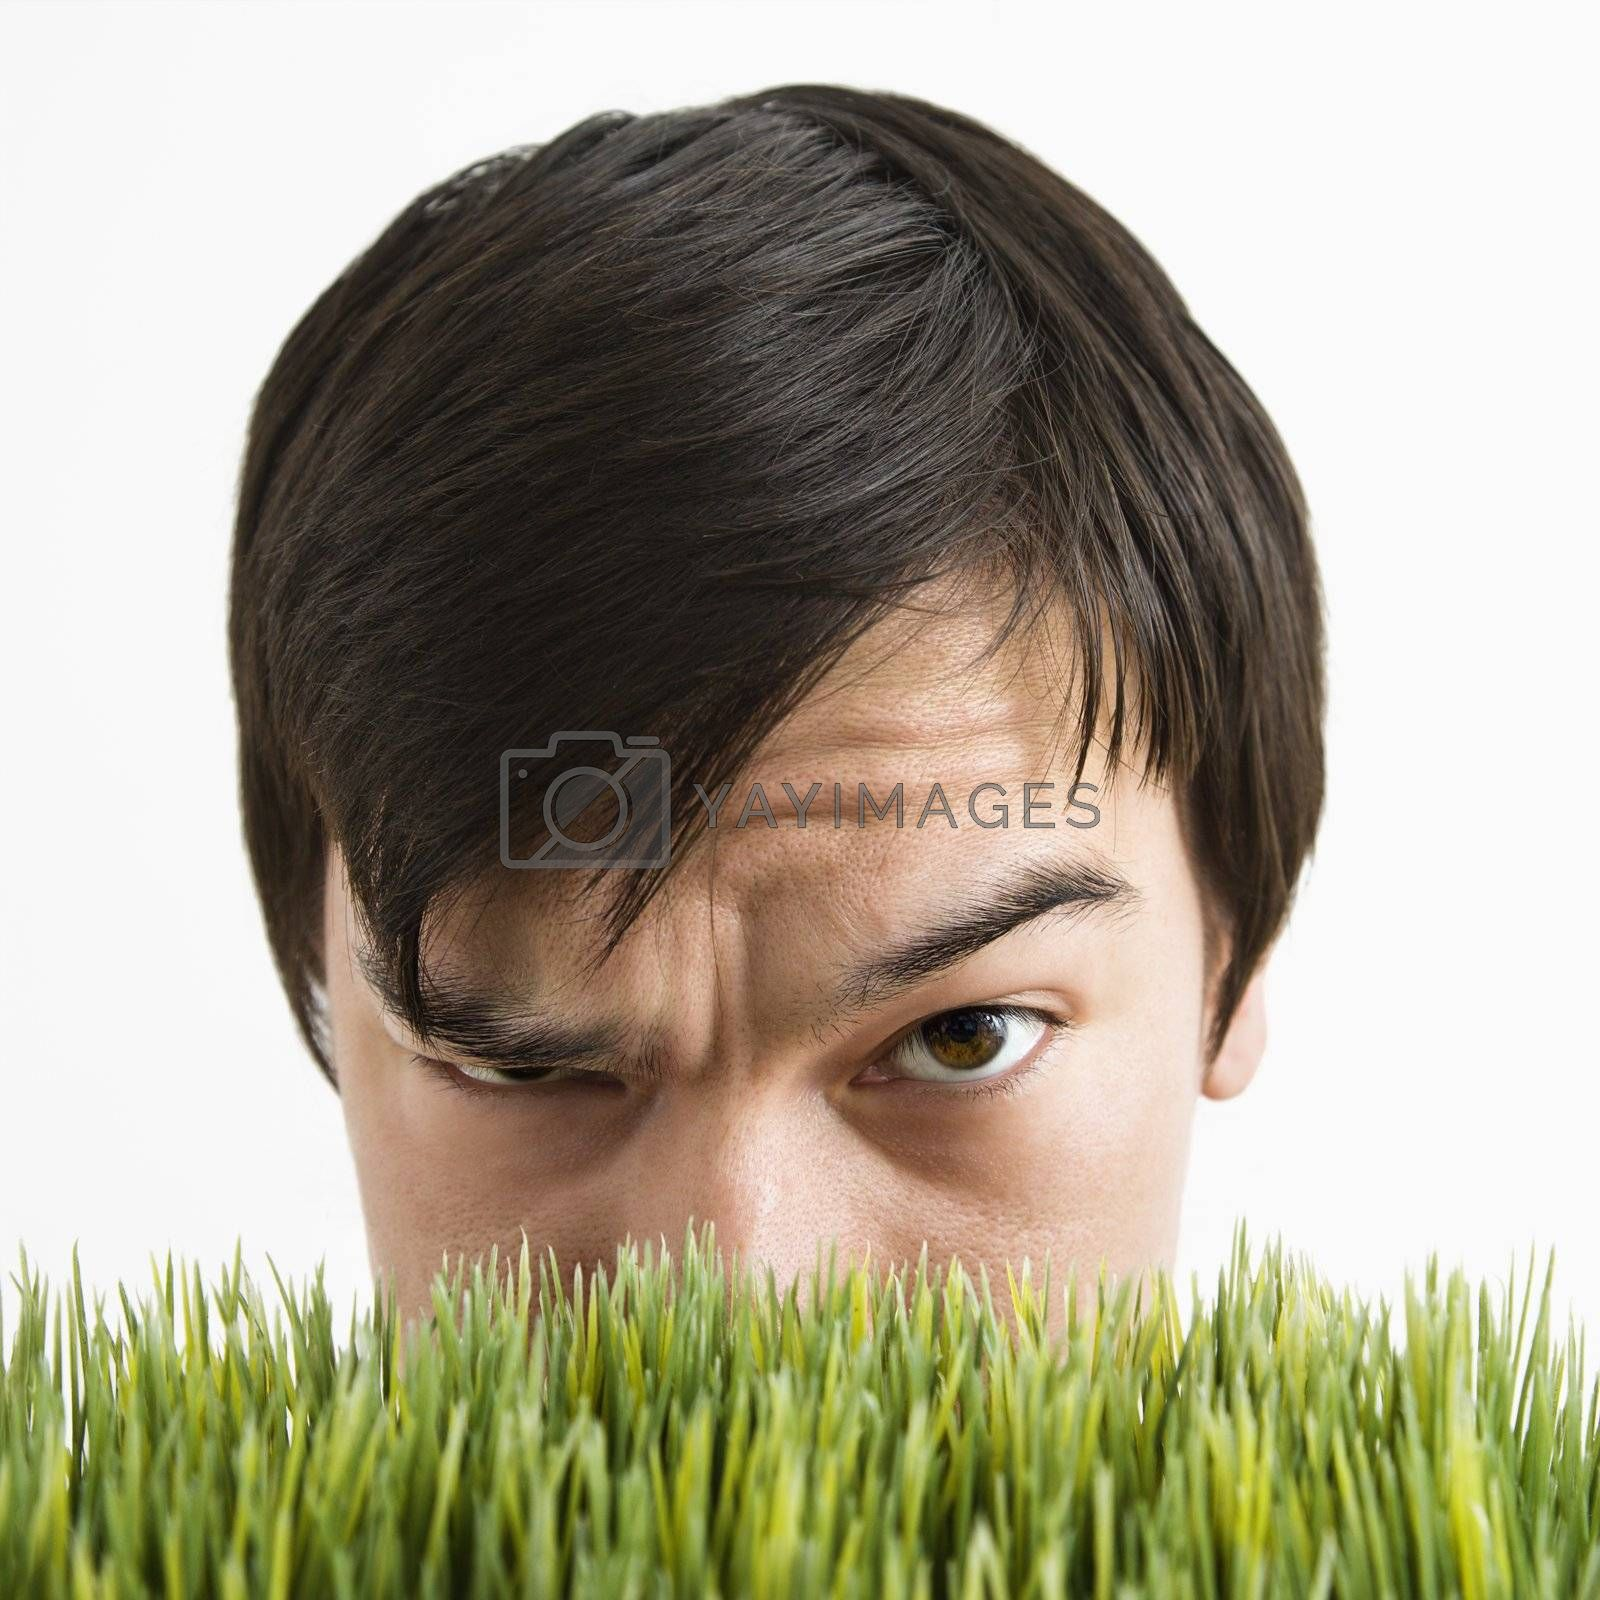 Asian young man looking over grass with eyebrow cocked.